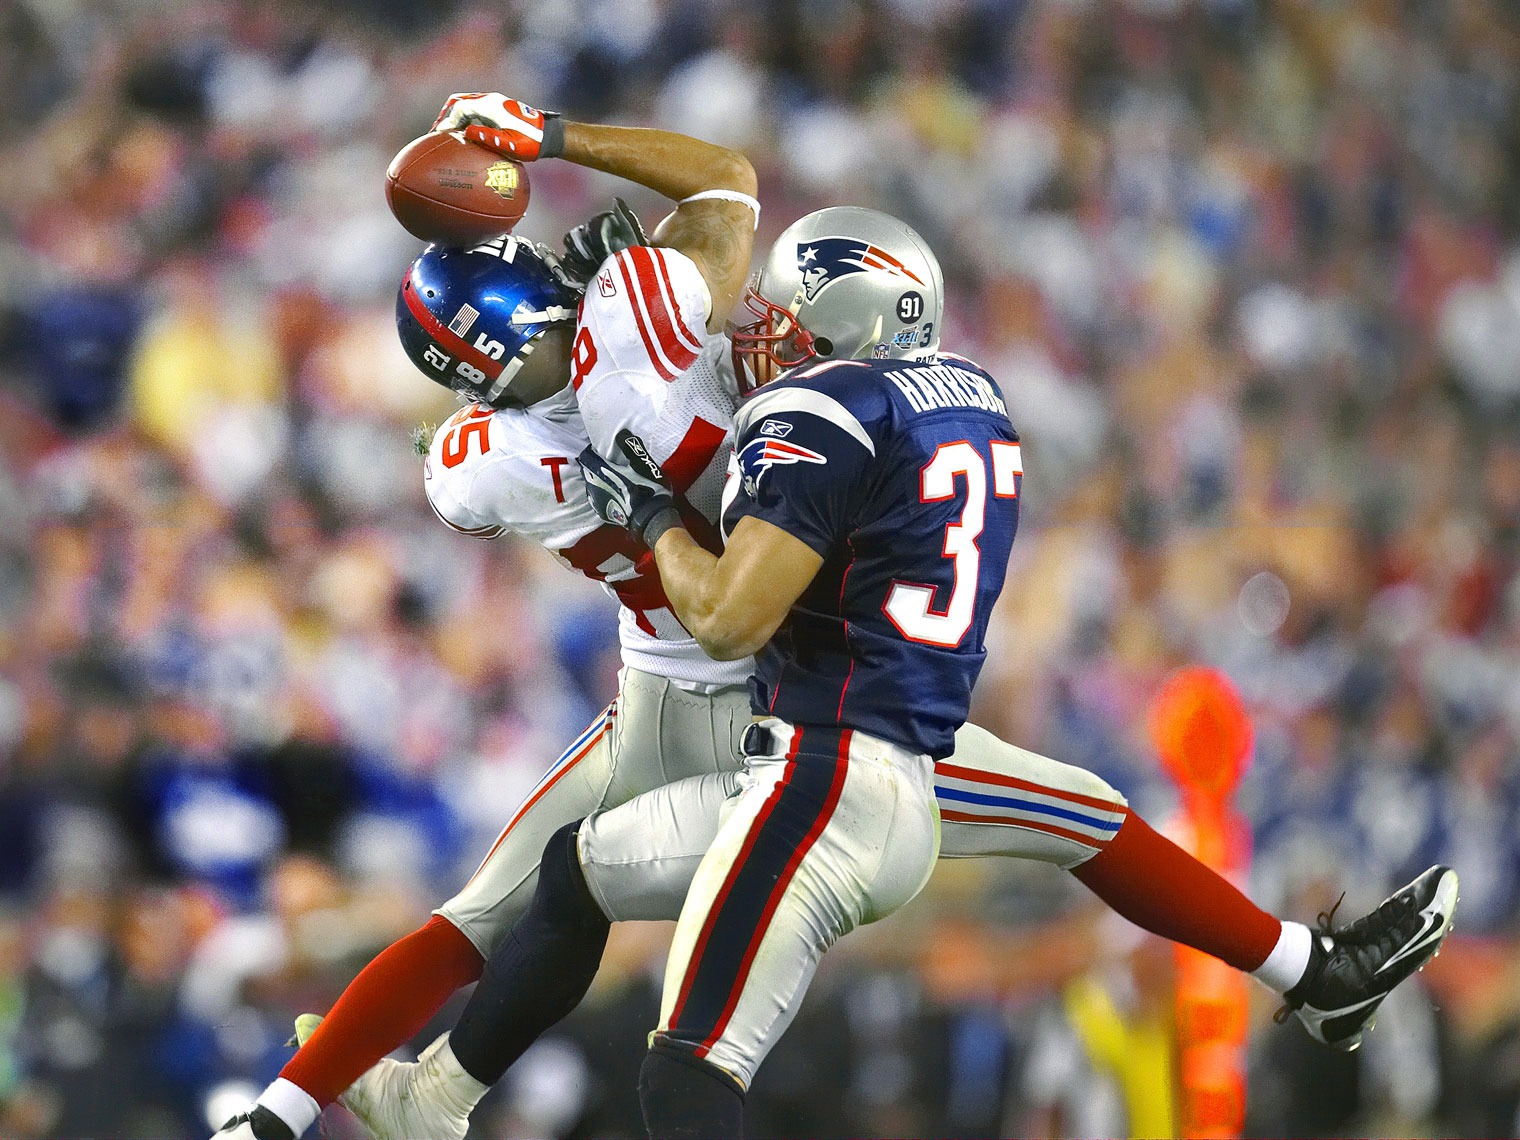 NY Giants receiver David Tyree makes a catch by trapping the ball on his helmet.